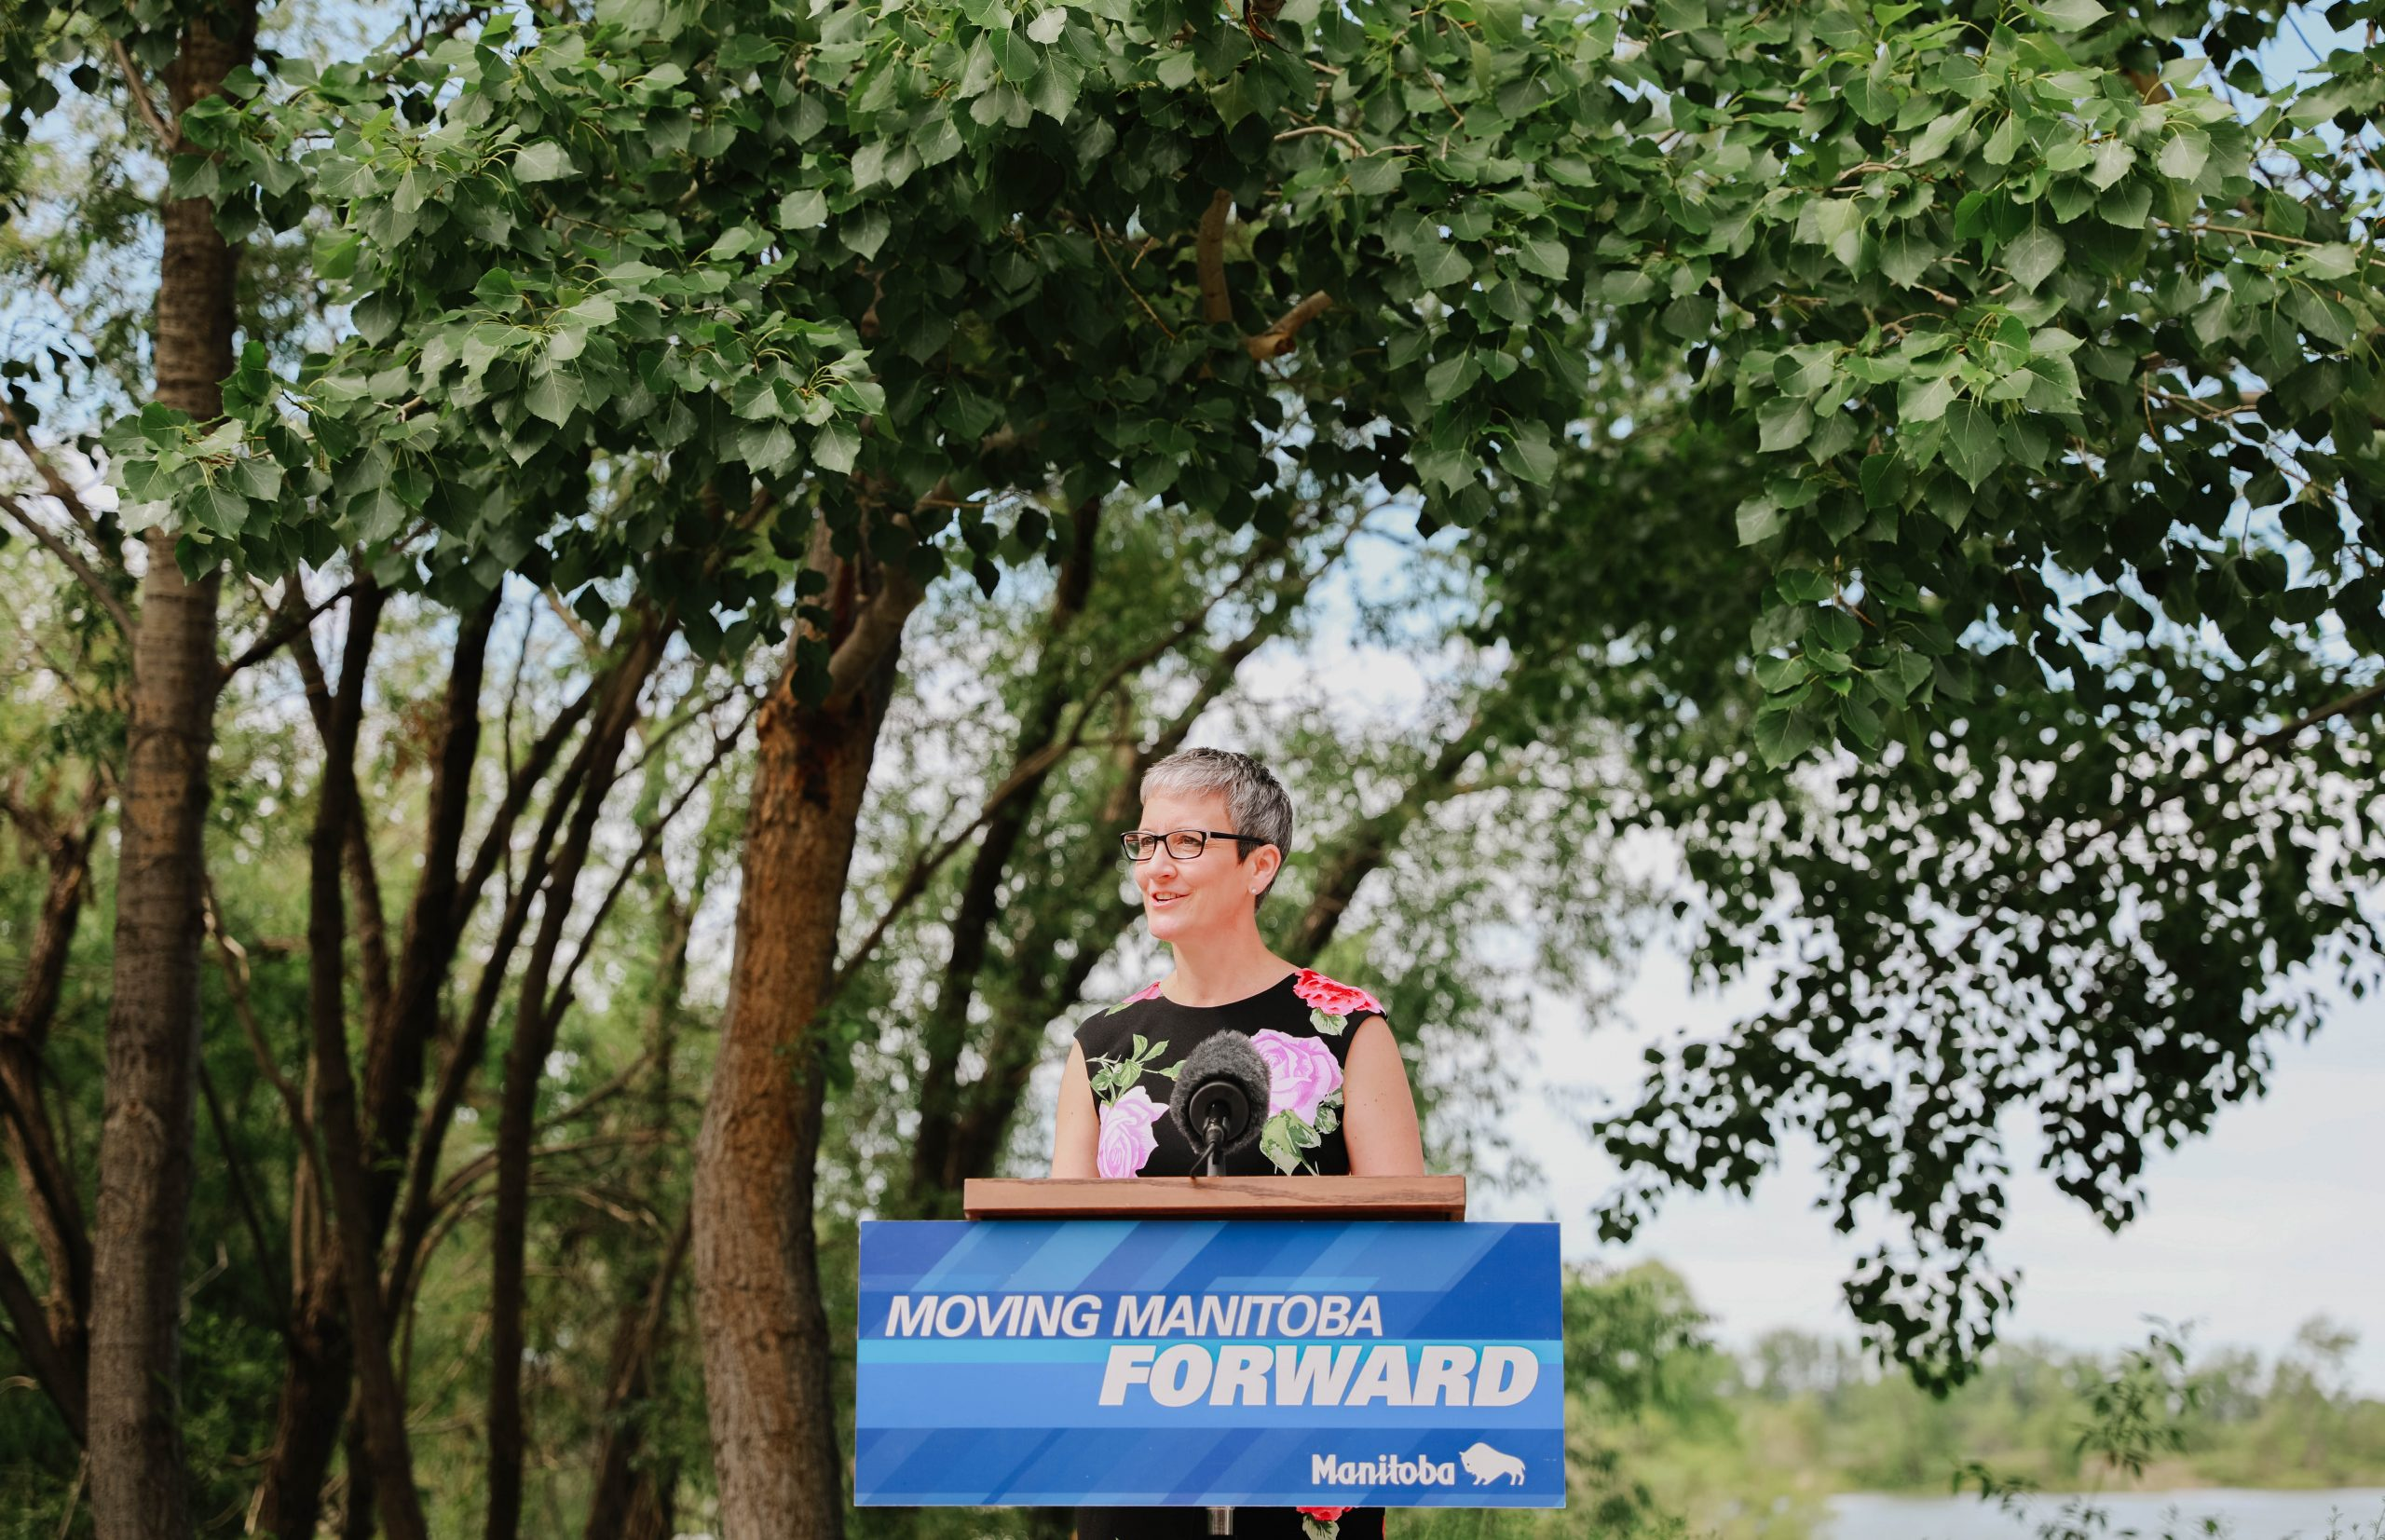 Liz Wilson stands at podium with greenery behind her